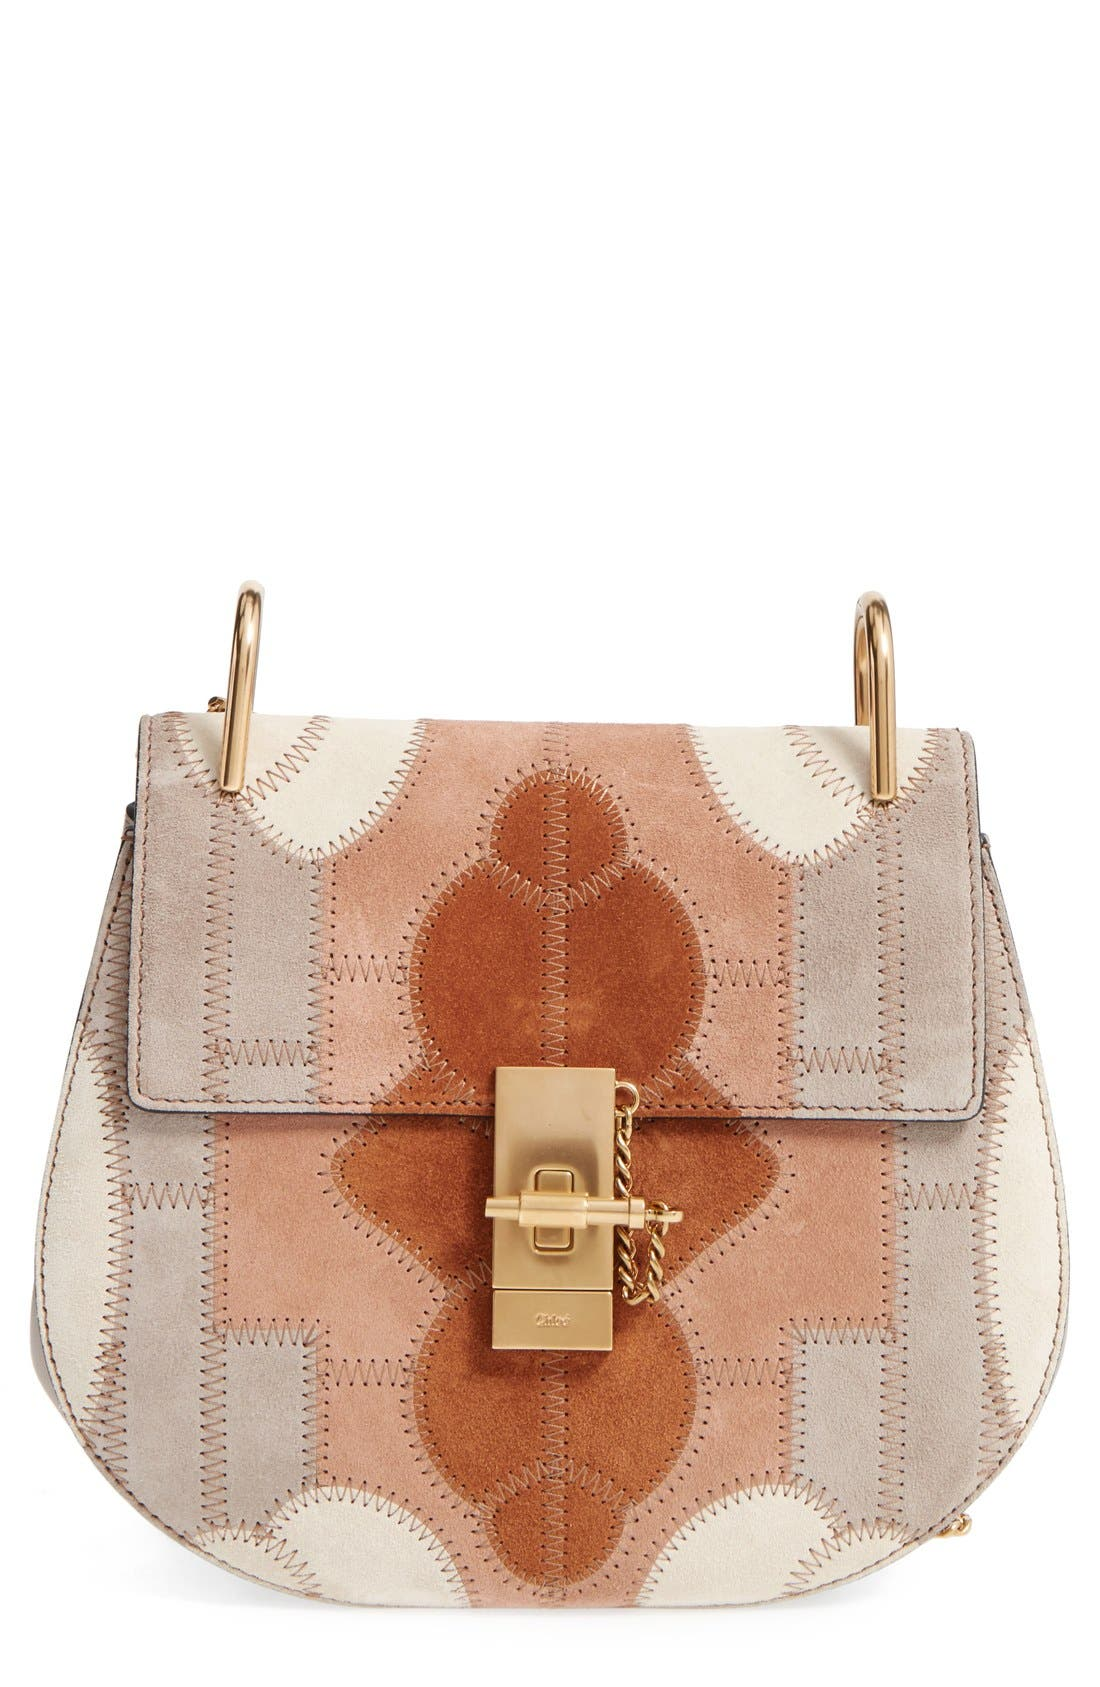 Main Image - Chloé 'Small Drew' Patchwork Suede Shoulder Bag